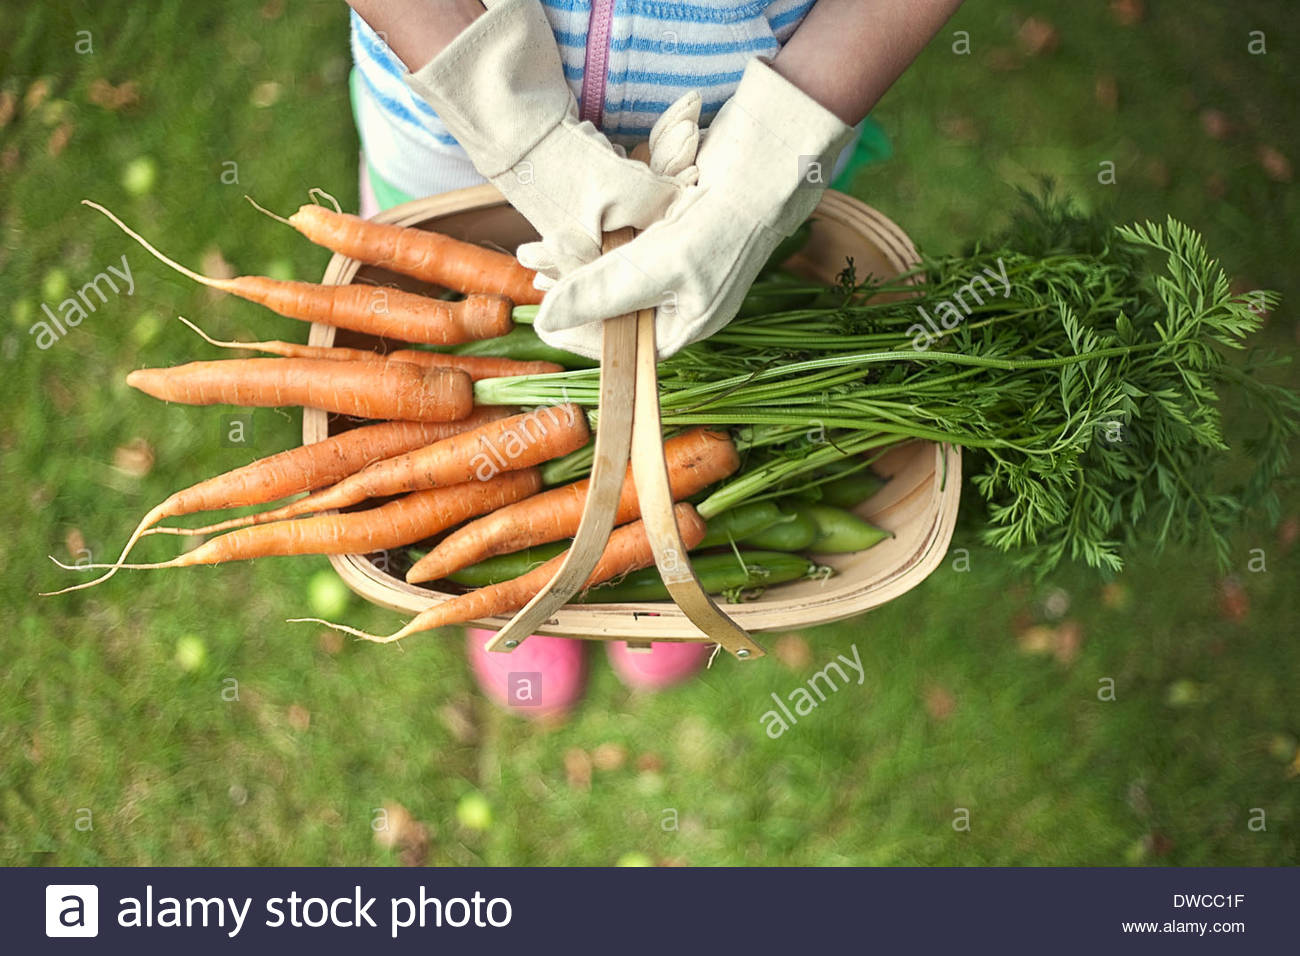 Garden trug of carrots - Stock Image